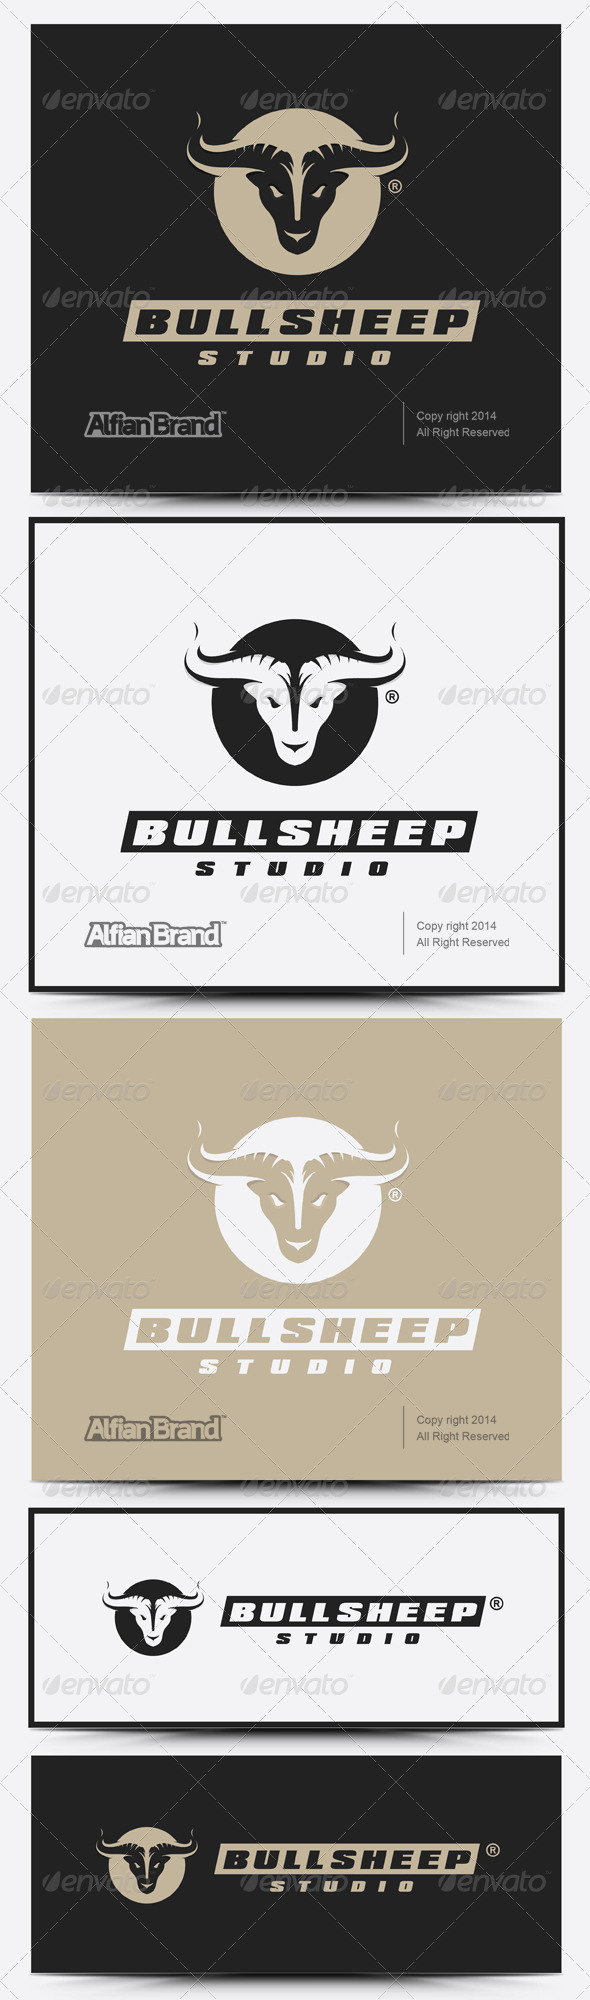 GraphicRiver Bull Sheep Logo 7636523